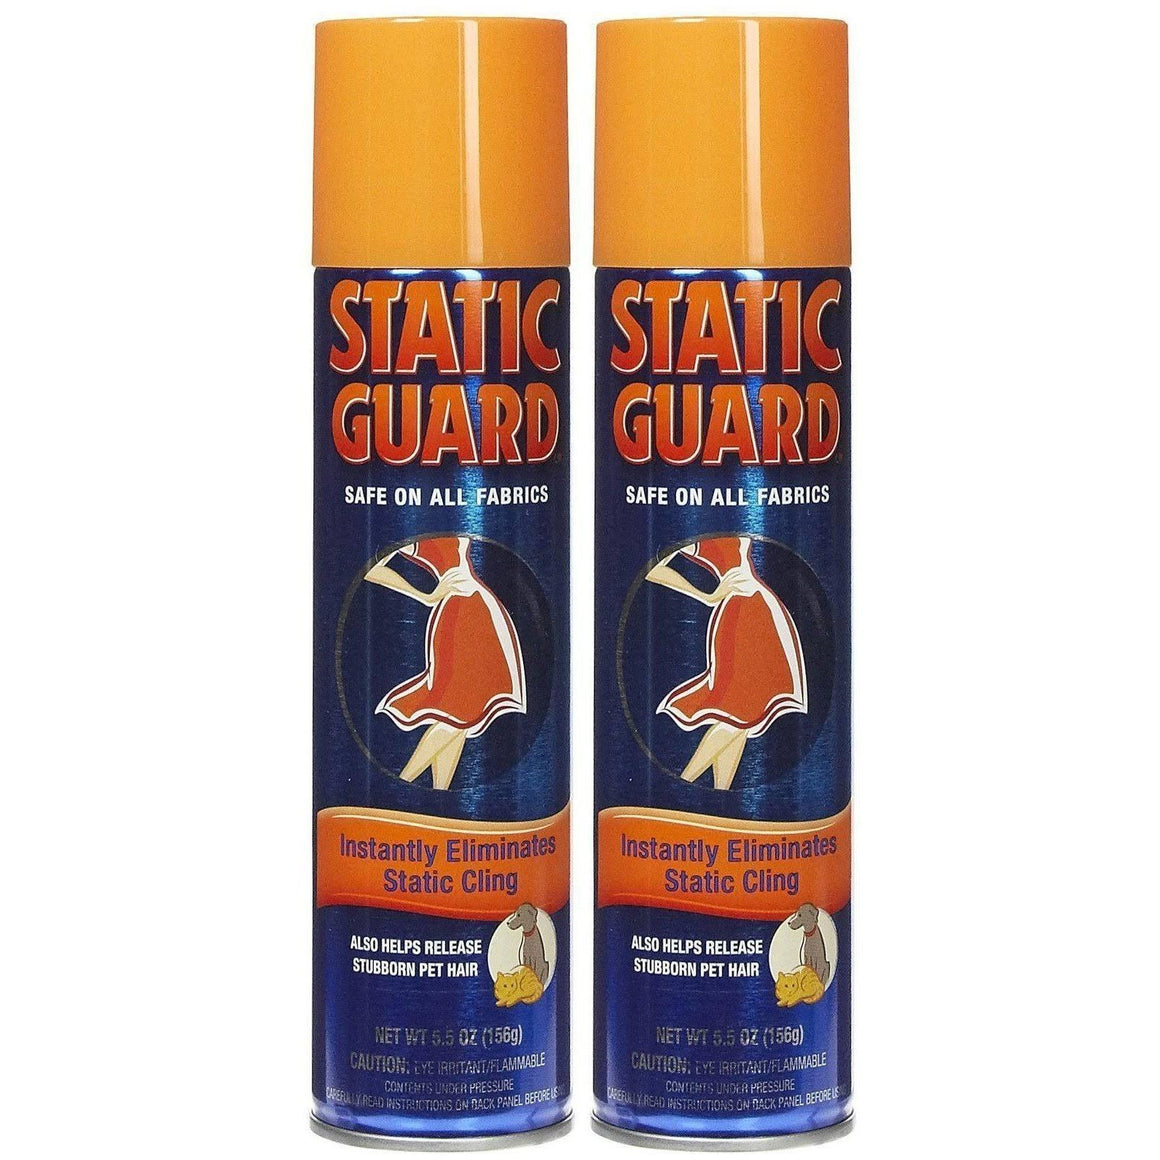 Static Guard Fabric Spray, 5.5 Ounce